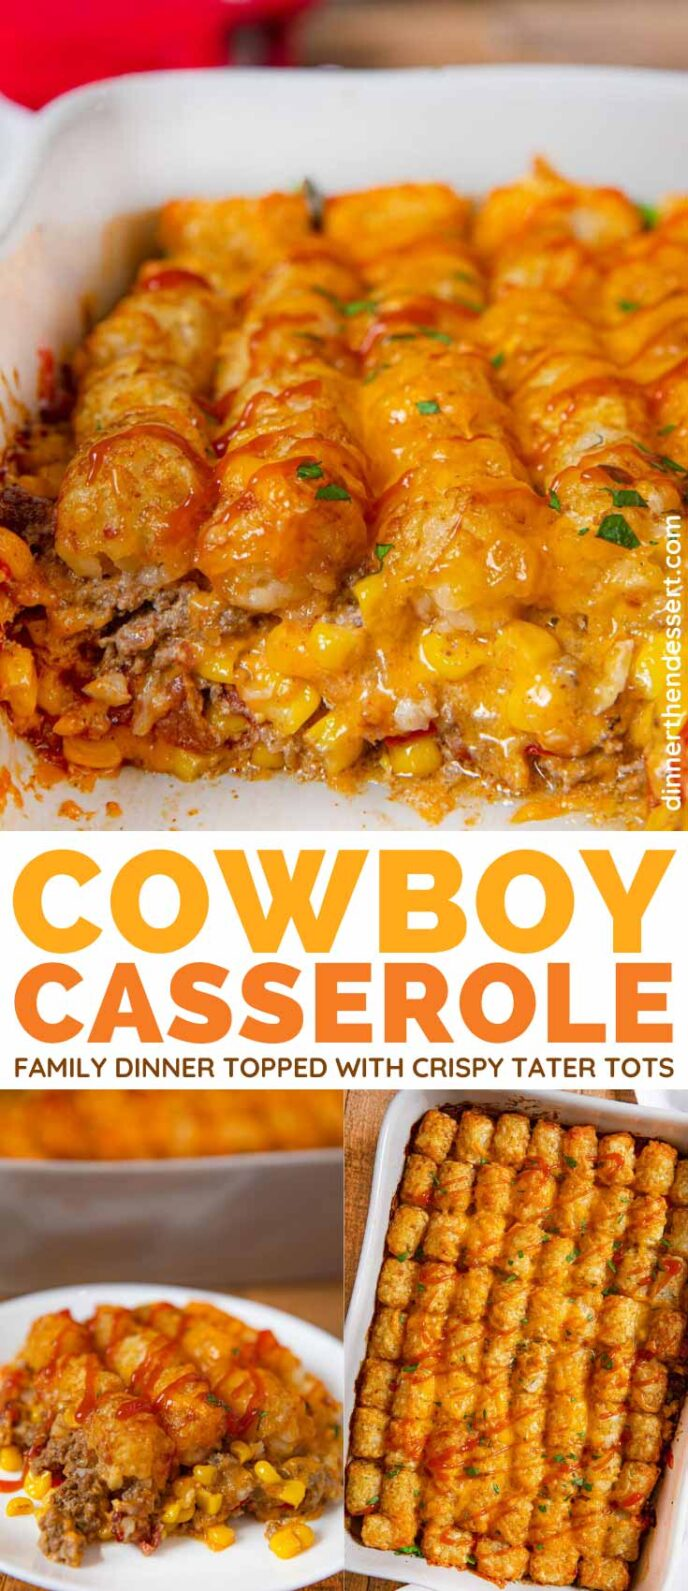 Cowboy Tater Tot Casserole collage